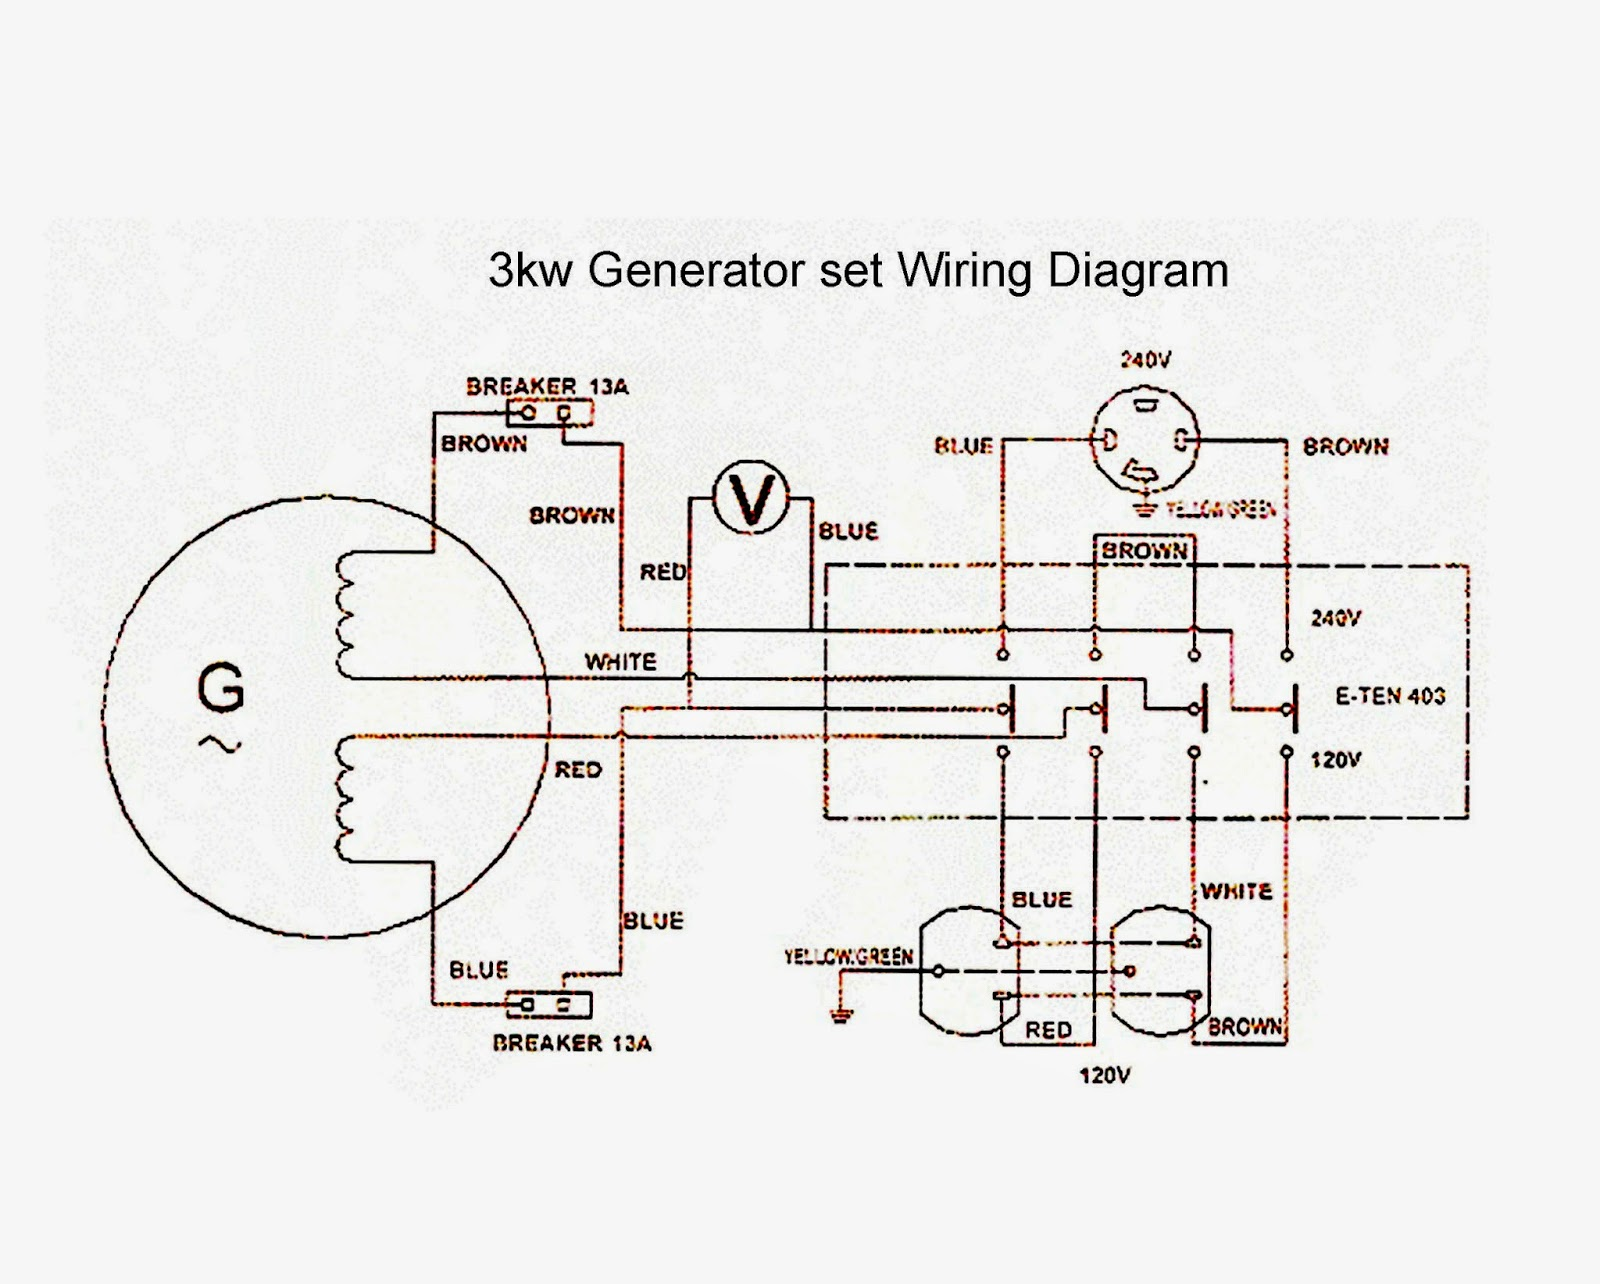 Wiring Diagram Generator : July electrical winding wiring diagrams